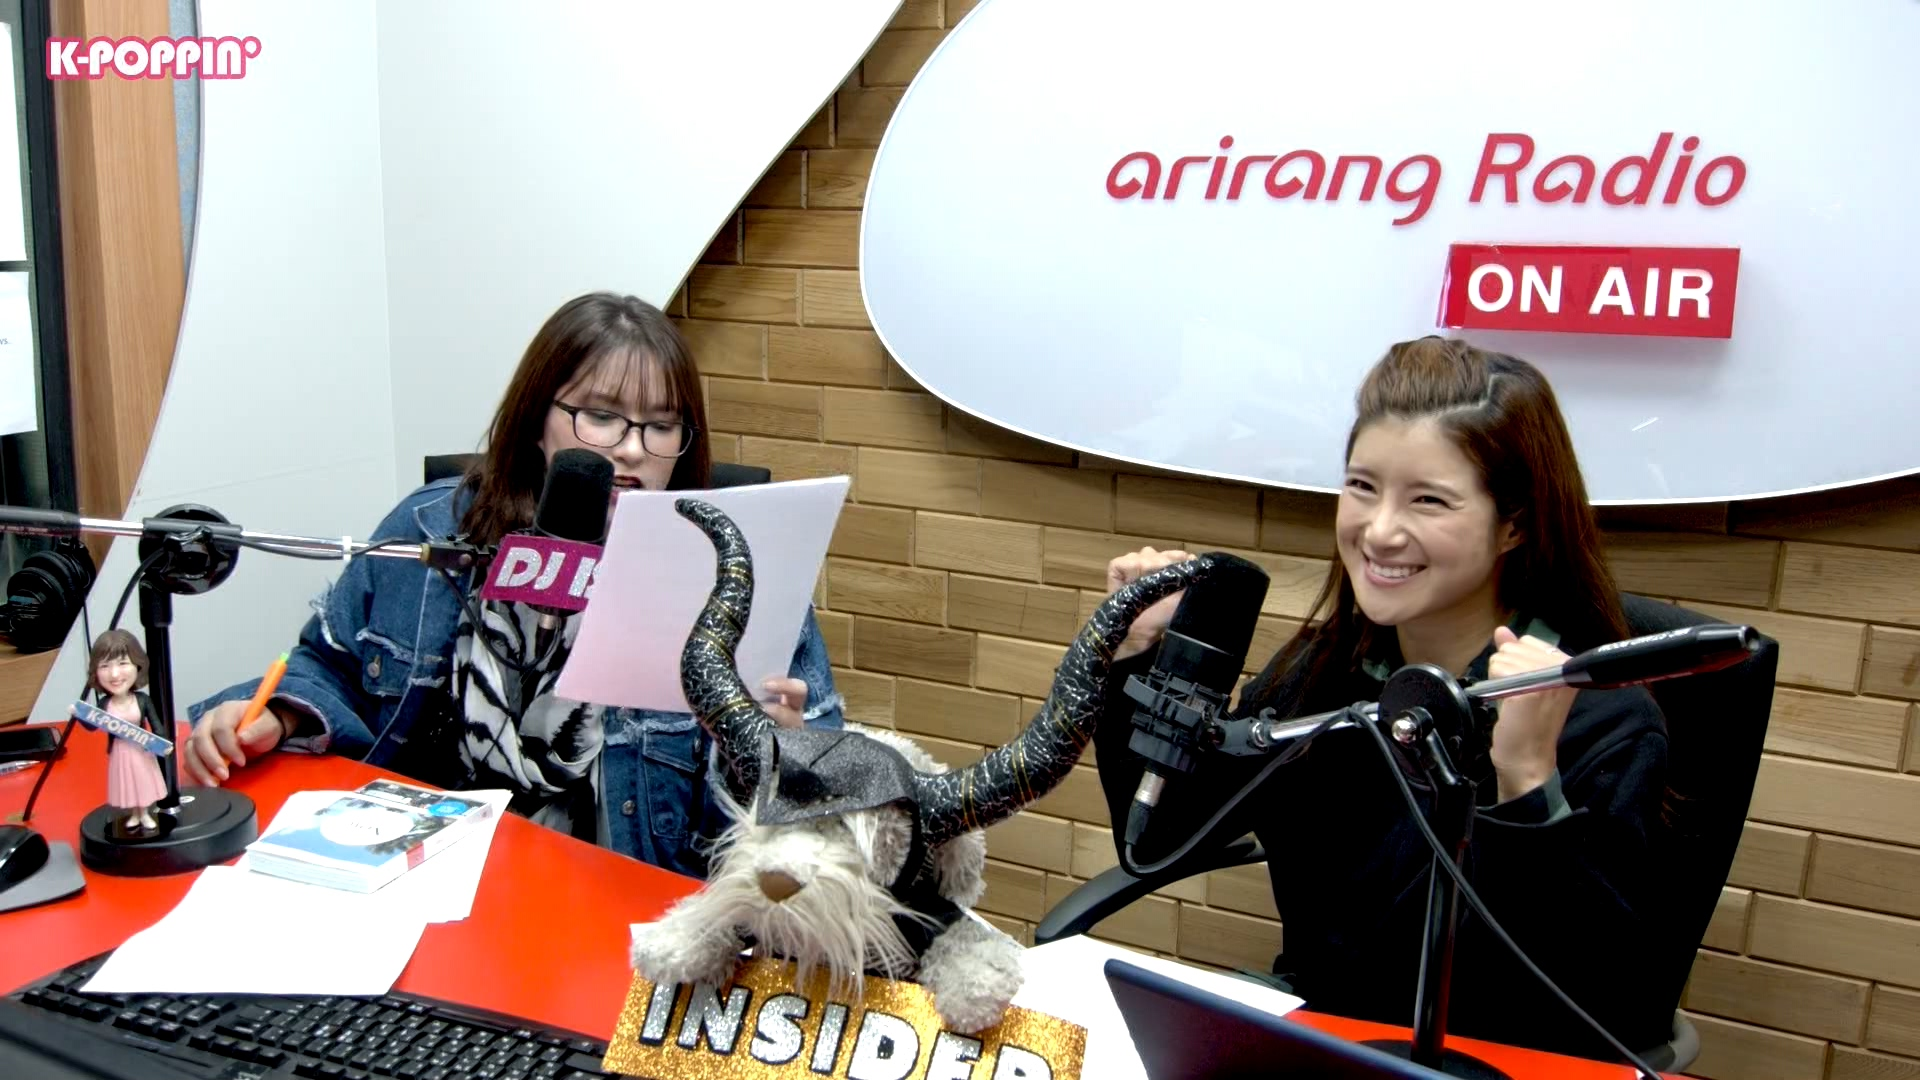 [K-Poppin'] INSIDER with Maeng Gina 맹지나